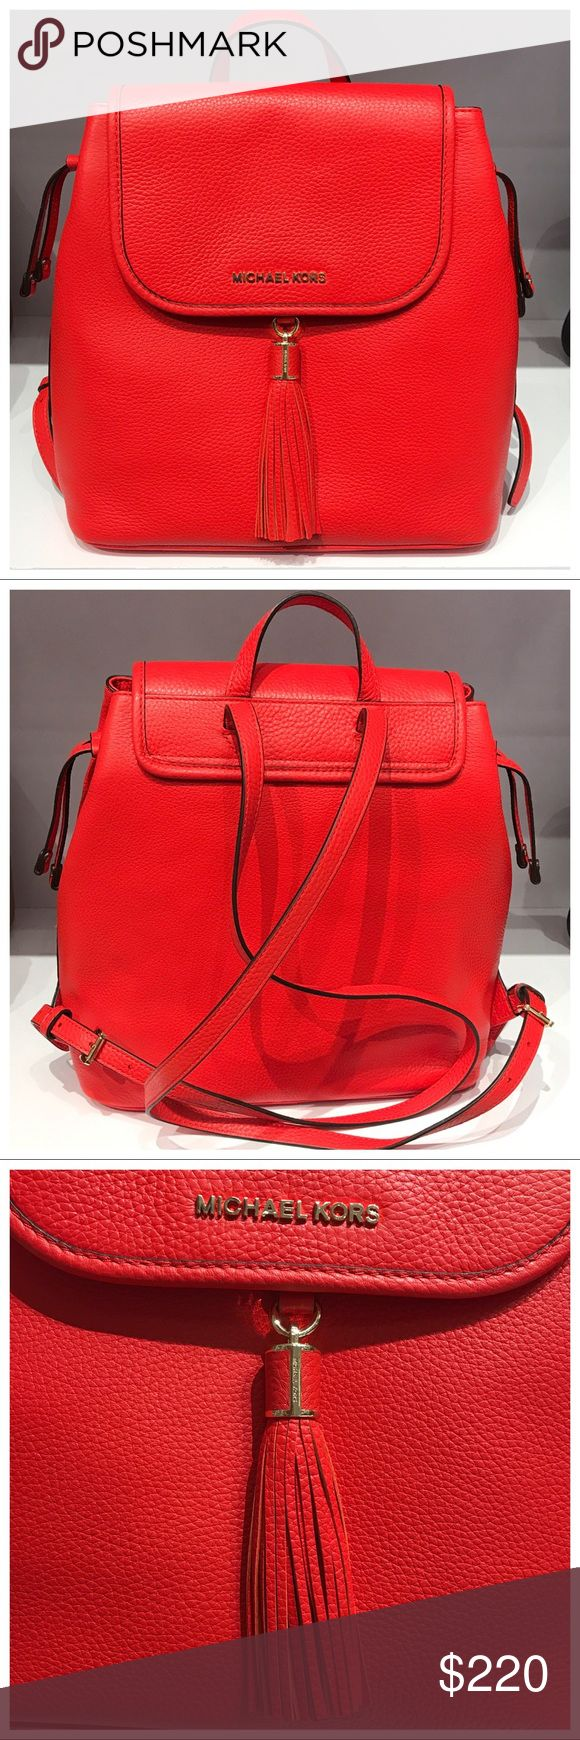 """NWT MK Bedford Drawstring Backpack 100% Authentic & Brand new with tag!  MICHAEL Michael Kors - Toss on and head out the door in this laid back yet luxe Bedford Drawstring backpack handbag, it redefines big-city accessorizing.  Style # 35S7GMAB7L Color: Sienna MSRP: 428 Measurements: Approx. 12"""" H x 12.5"""" L x 5.75"""" D   Product Features:  Made of genuine soft pebbled leather Adjustable leather shoulder/backpack straps approx. 10""""-15"""" drop Top tab leather handle approx 3"""" drop Magnetic snaps…"""